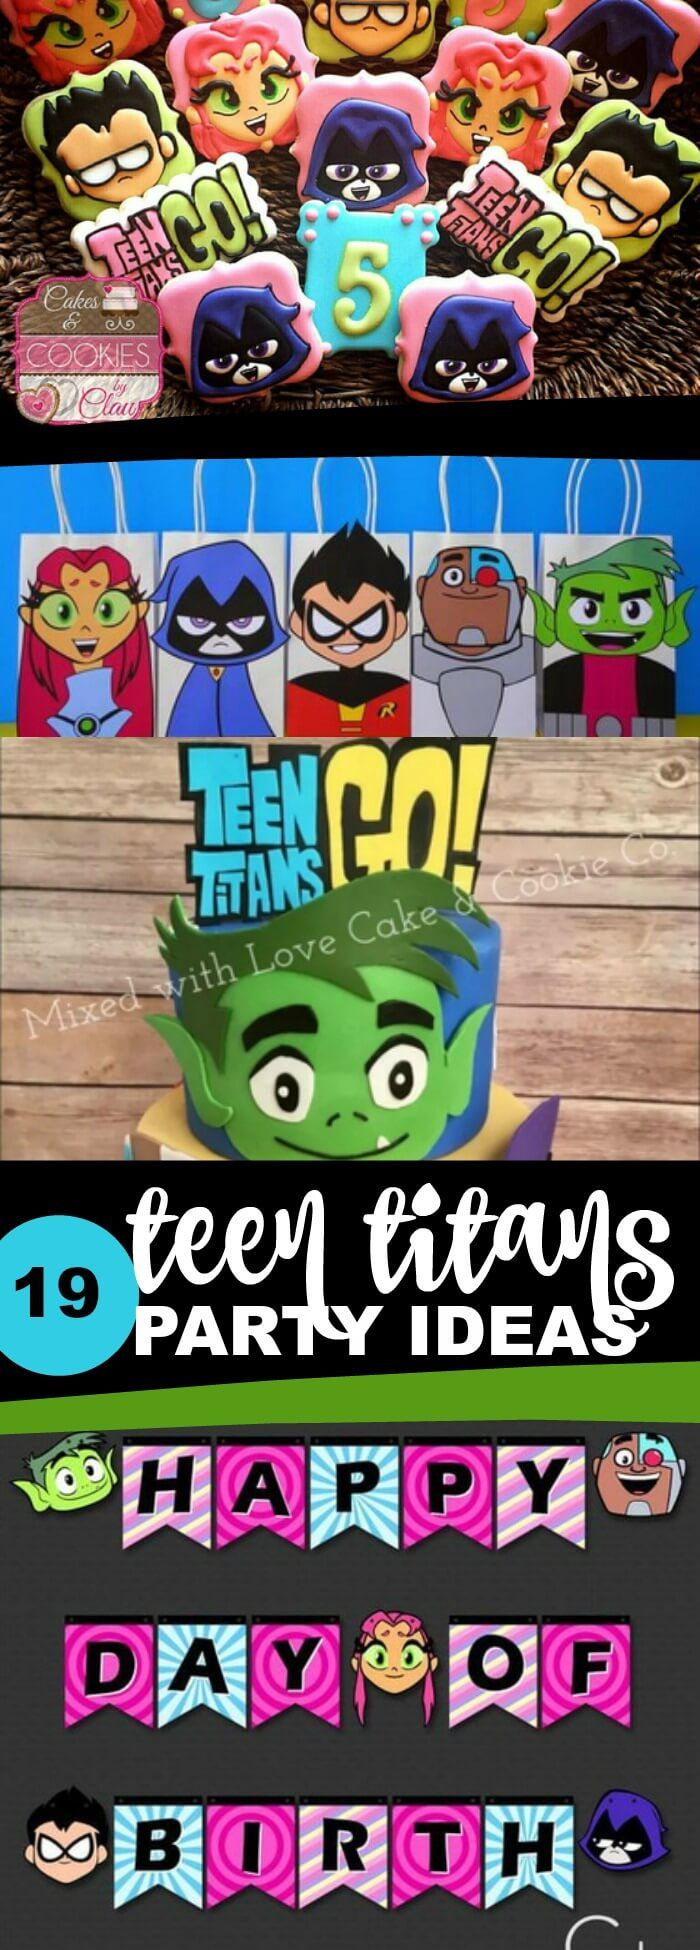 Teen Titans Go birthday party ideas, food, games, activities, favors, crafts, invitations and more via @spaceshipslb